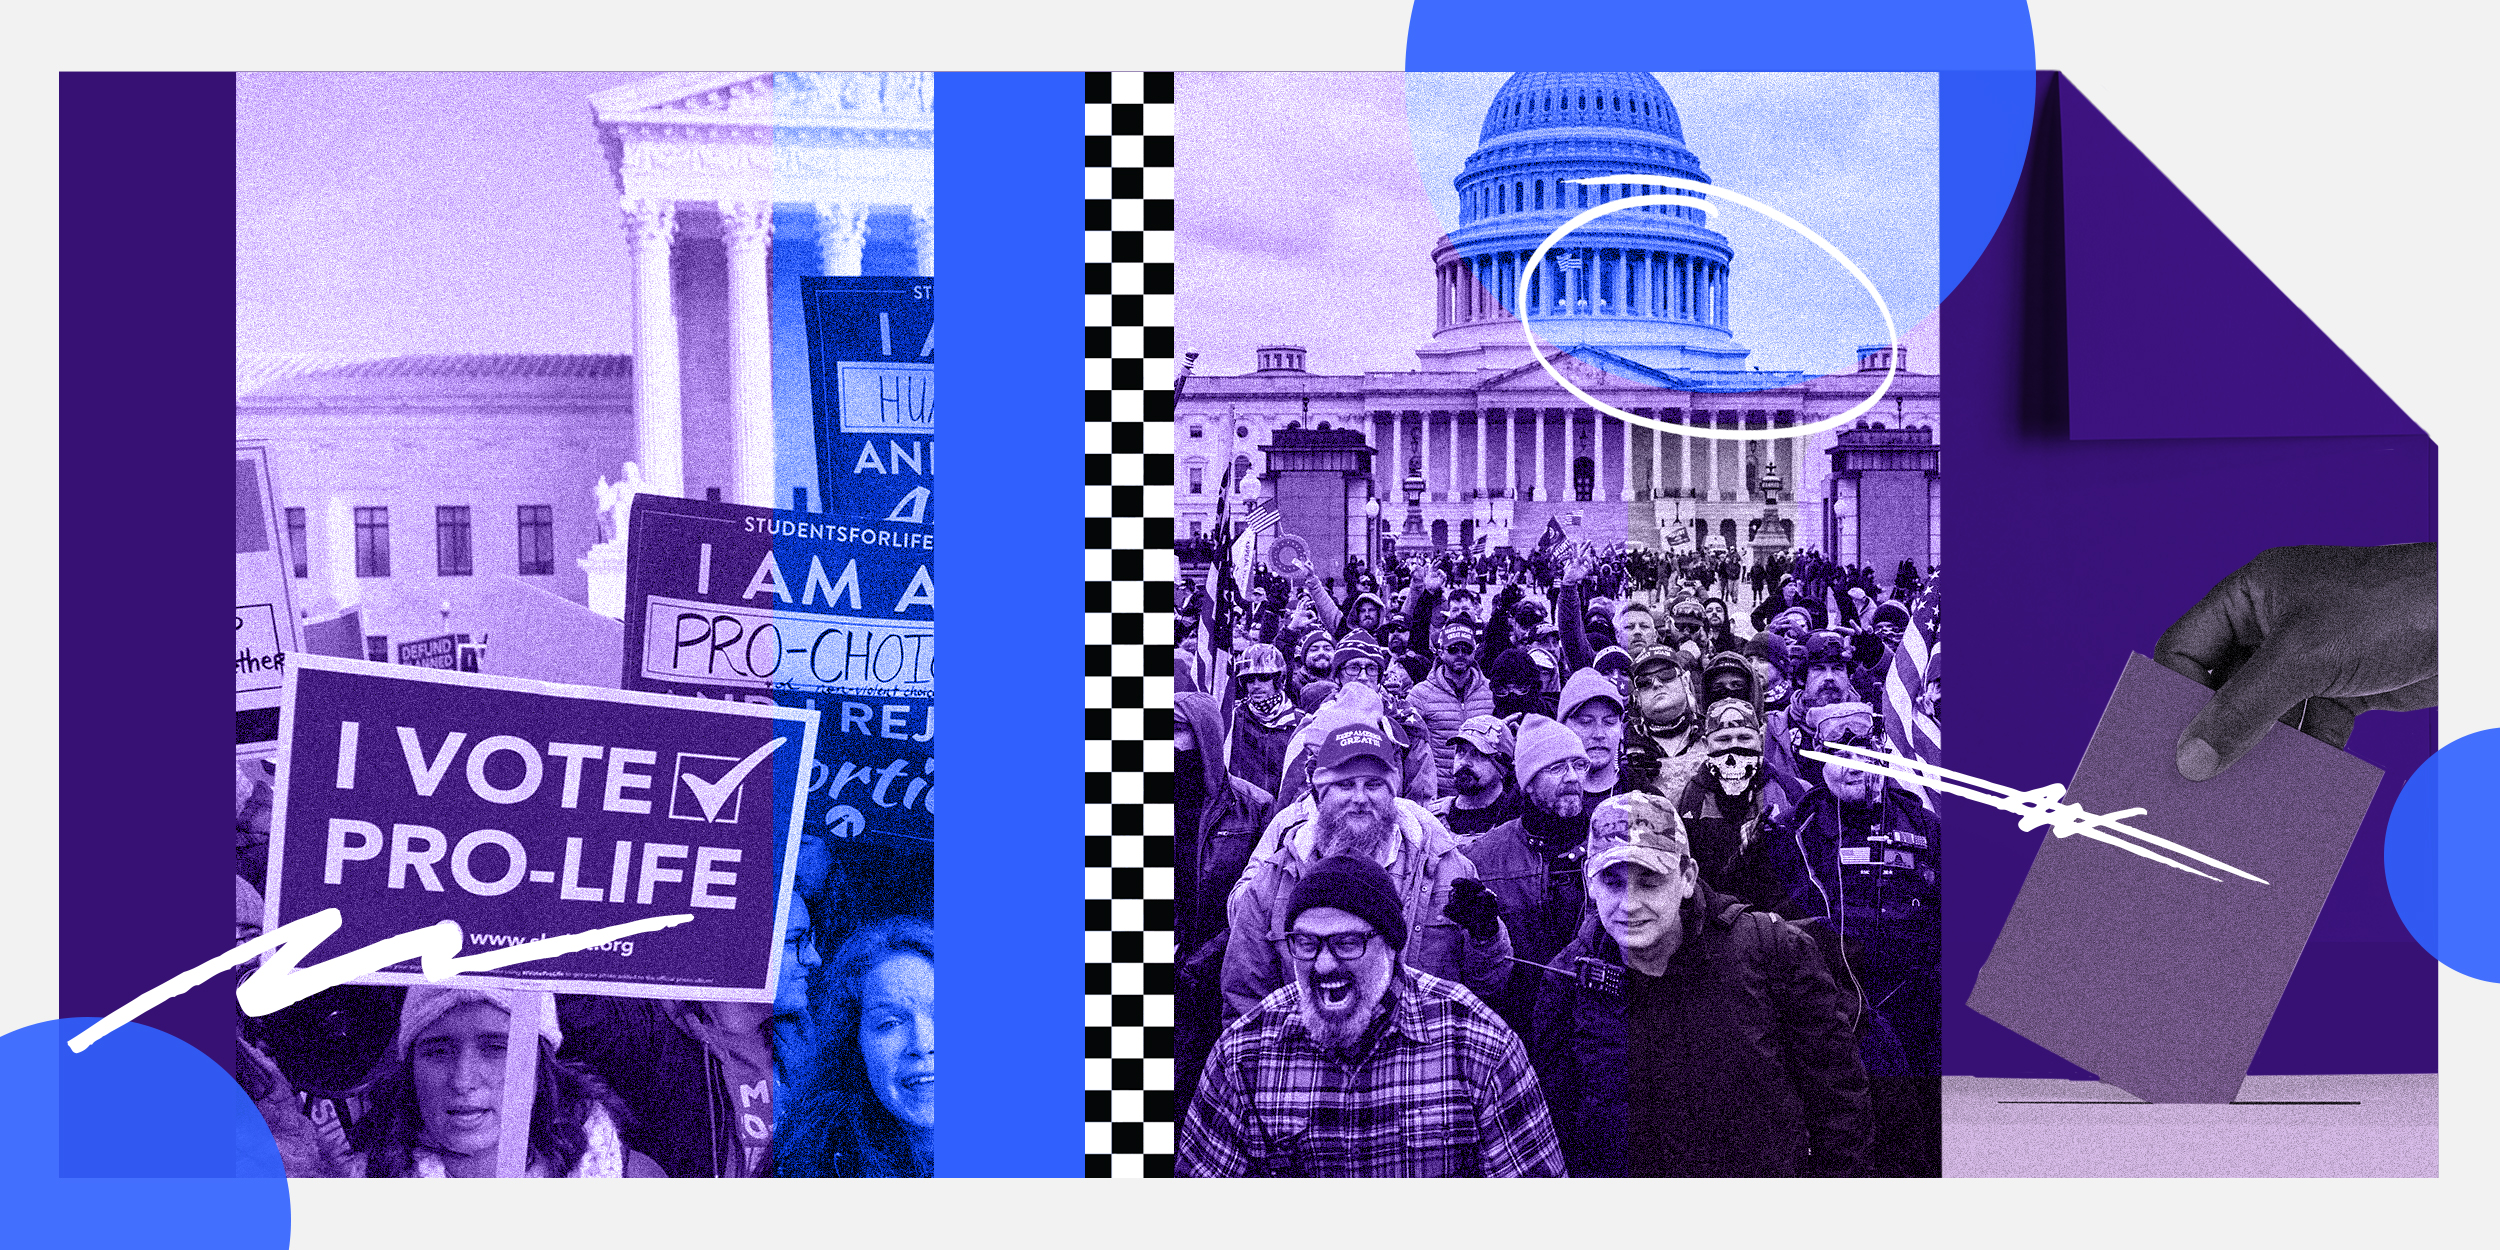 American fascism is on the rise as anti-abortion and voter suppression bills thrive thumbnail